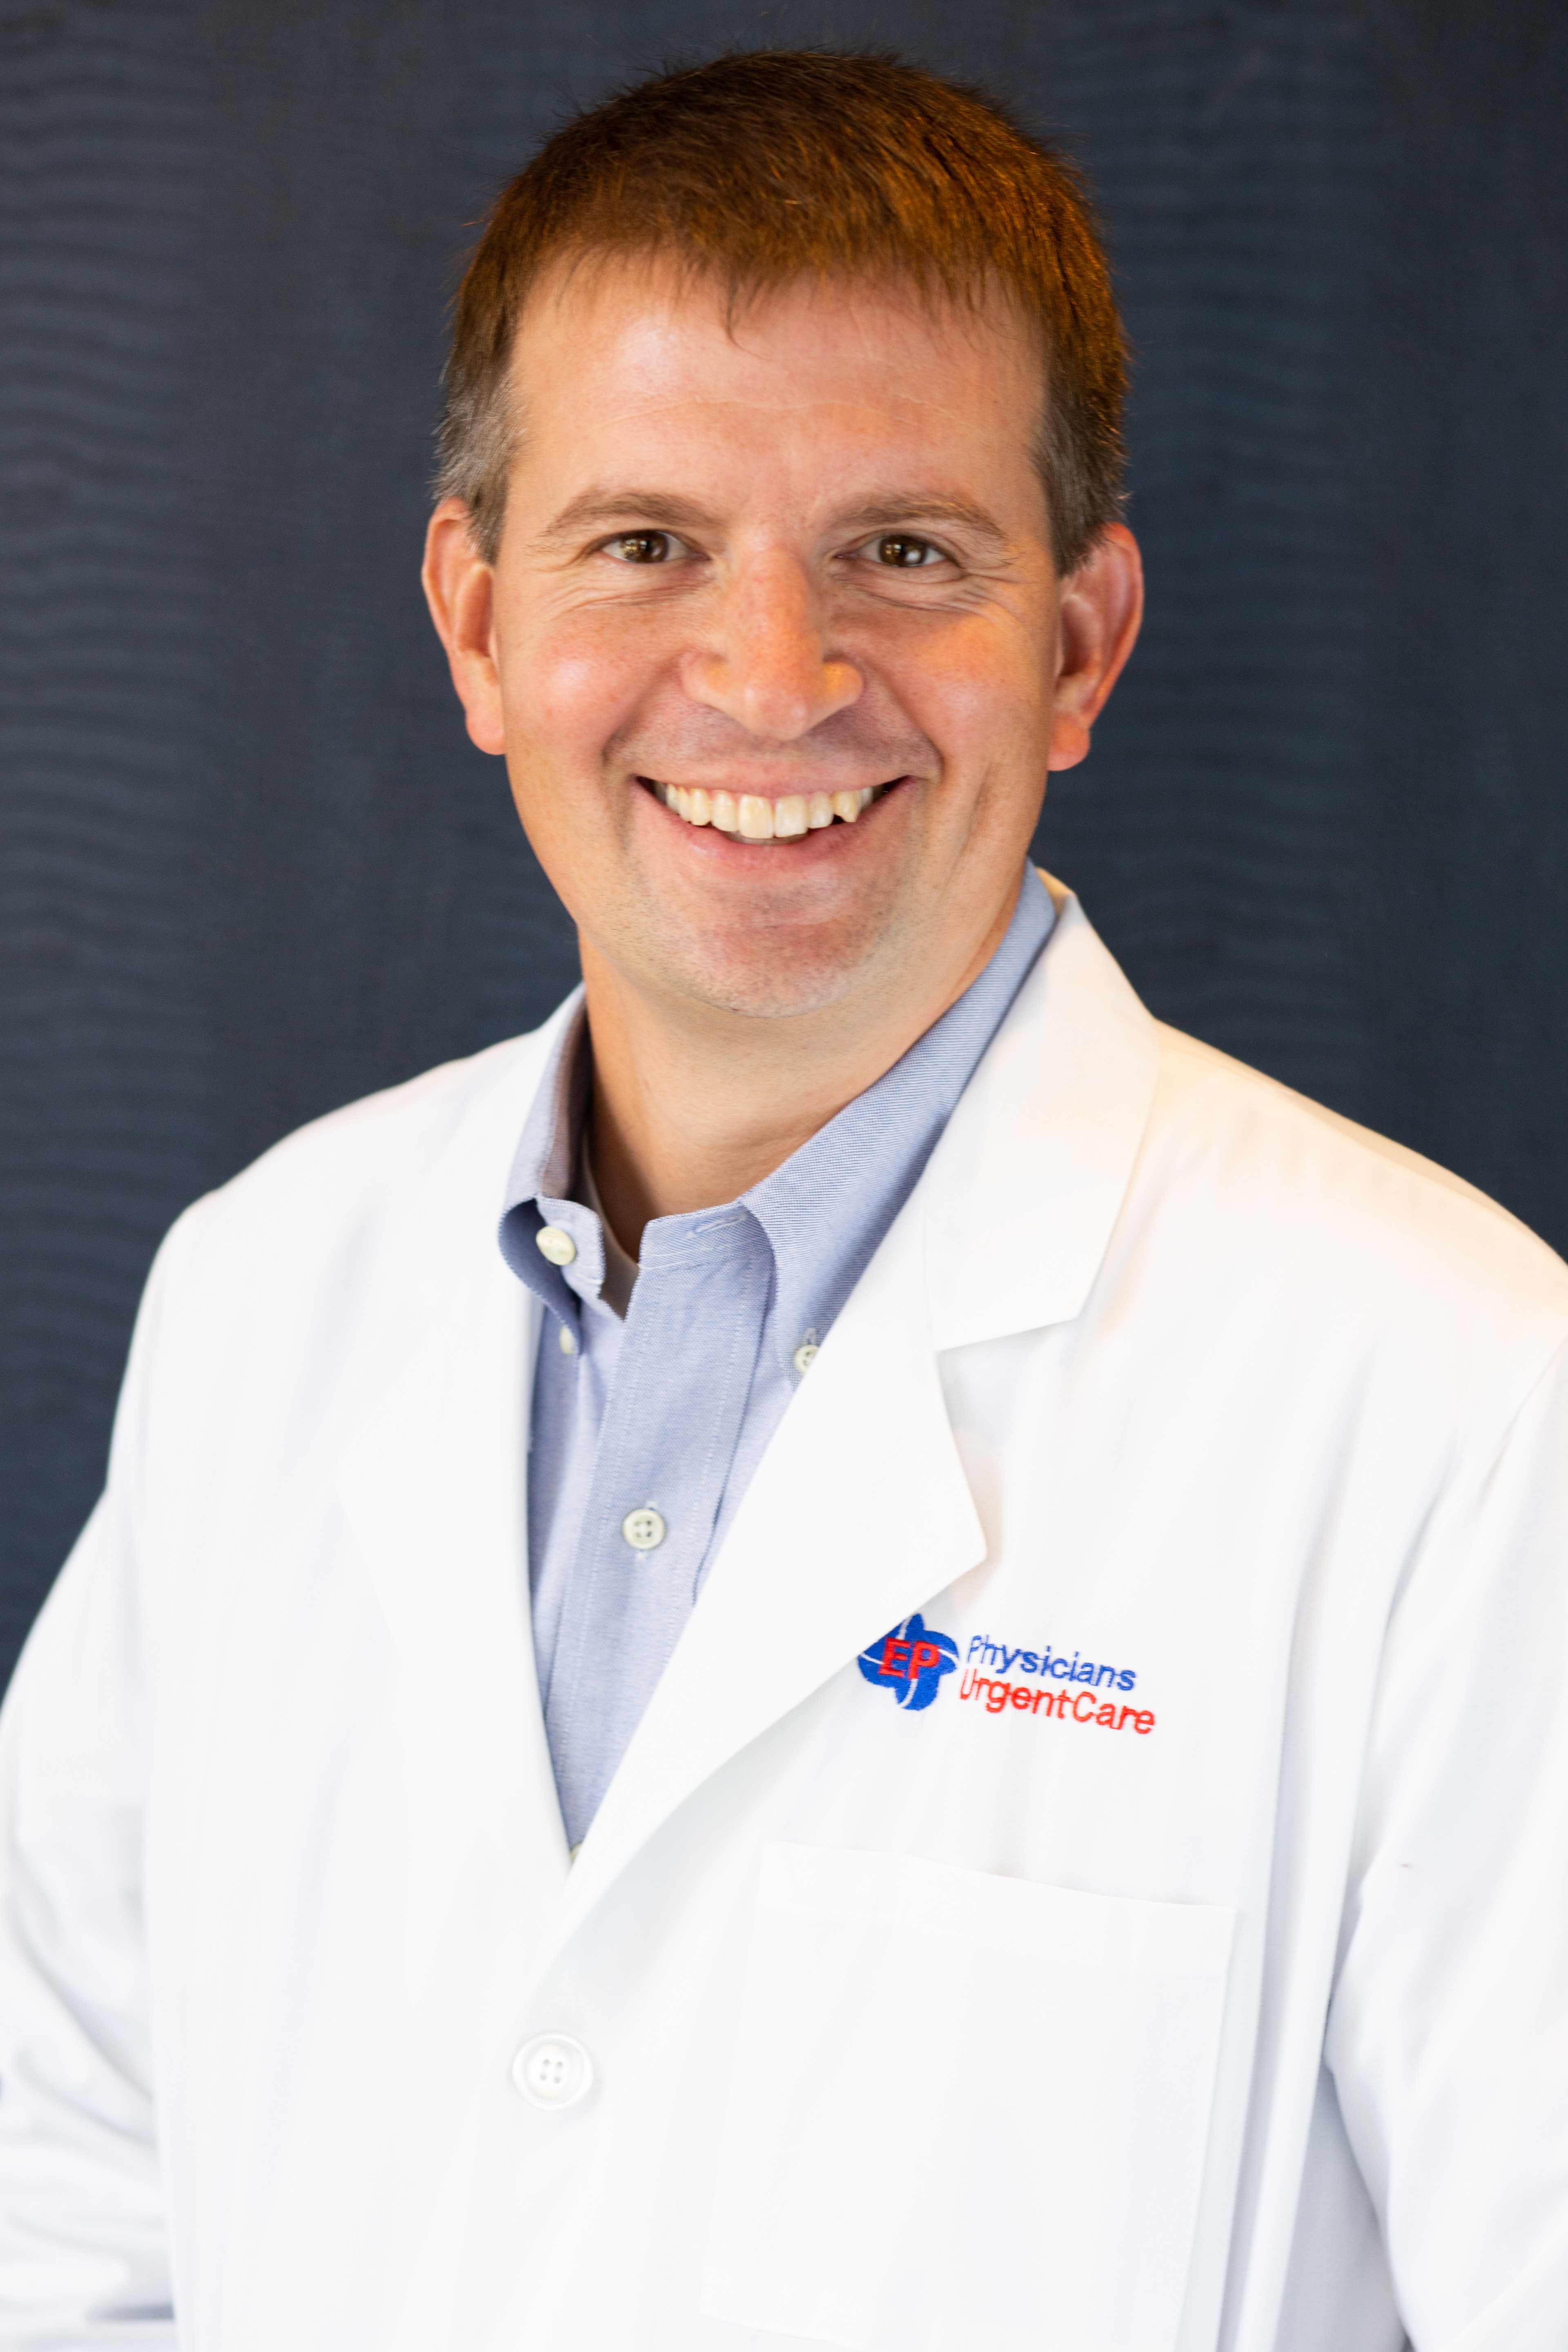 Stephen Anderson, MD